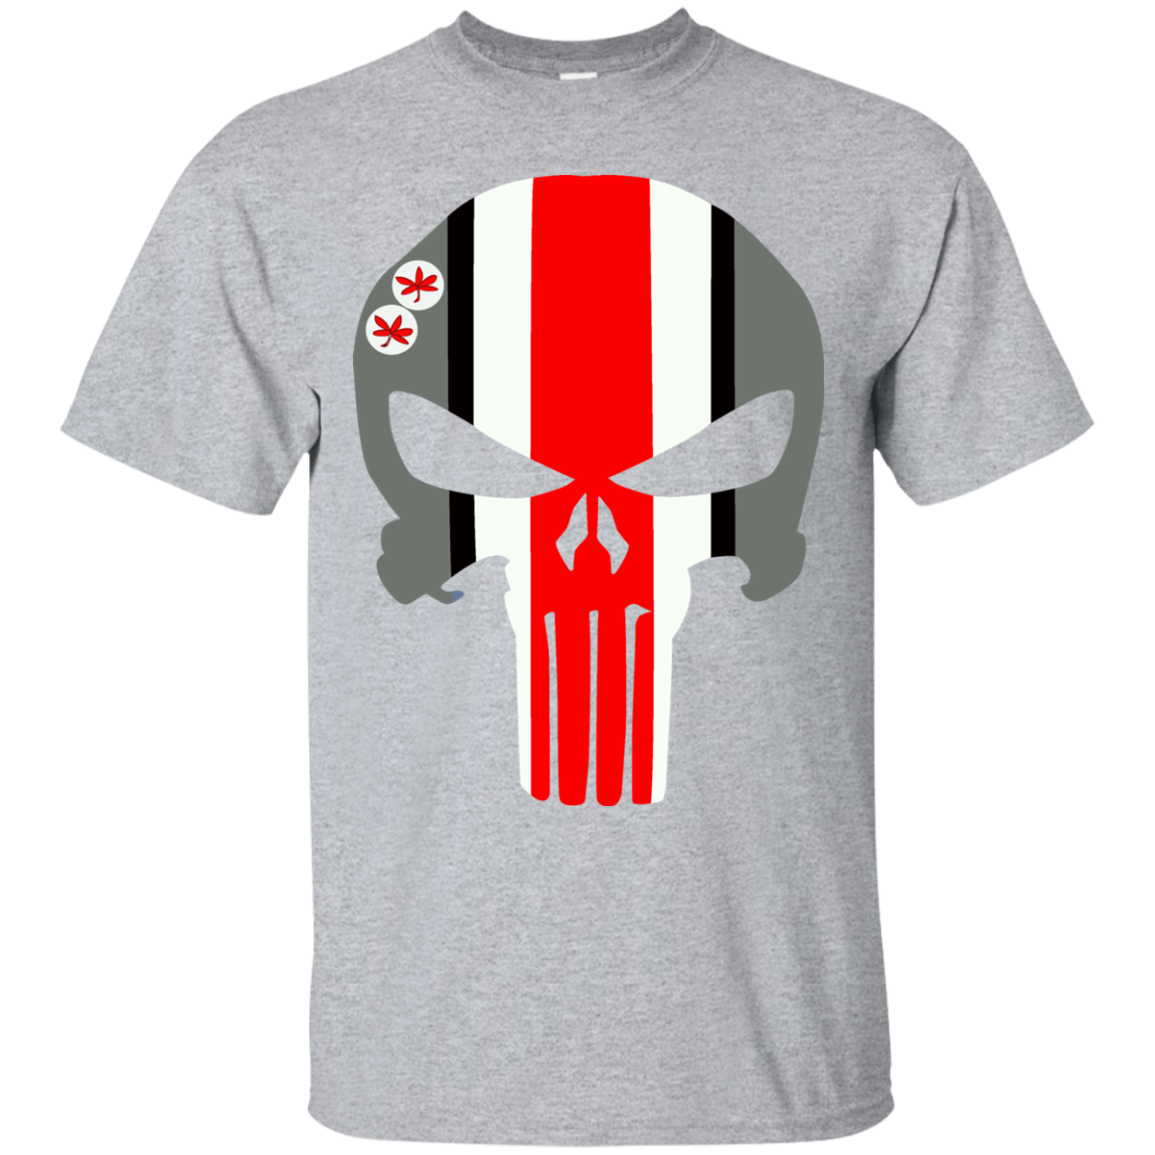 Ohio State Ugly Christmas Sweater.Punisher Style Fan Shirt Inspired By Thee Ohio State Buckeyes